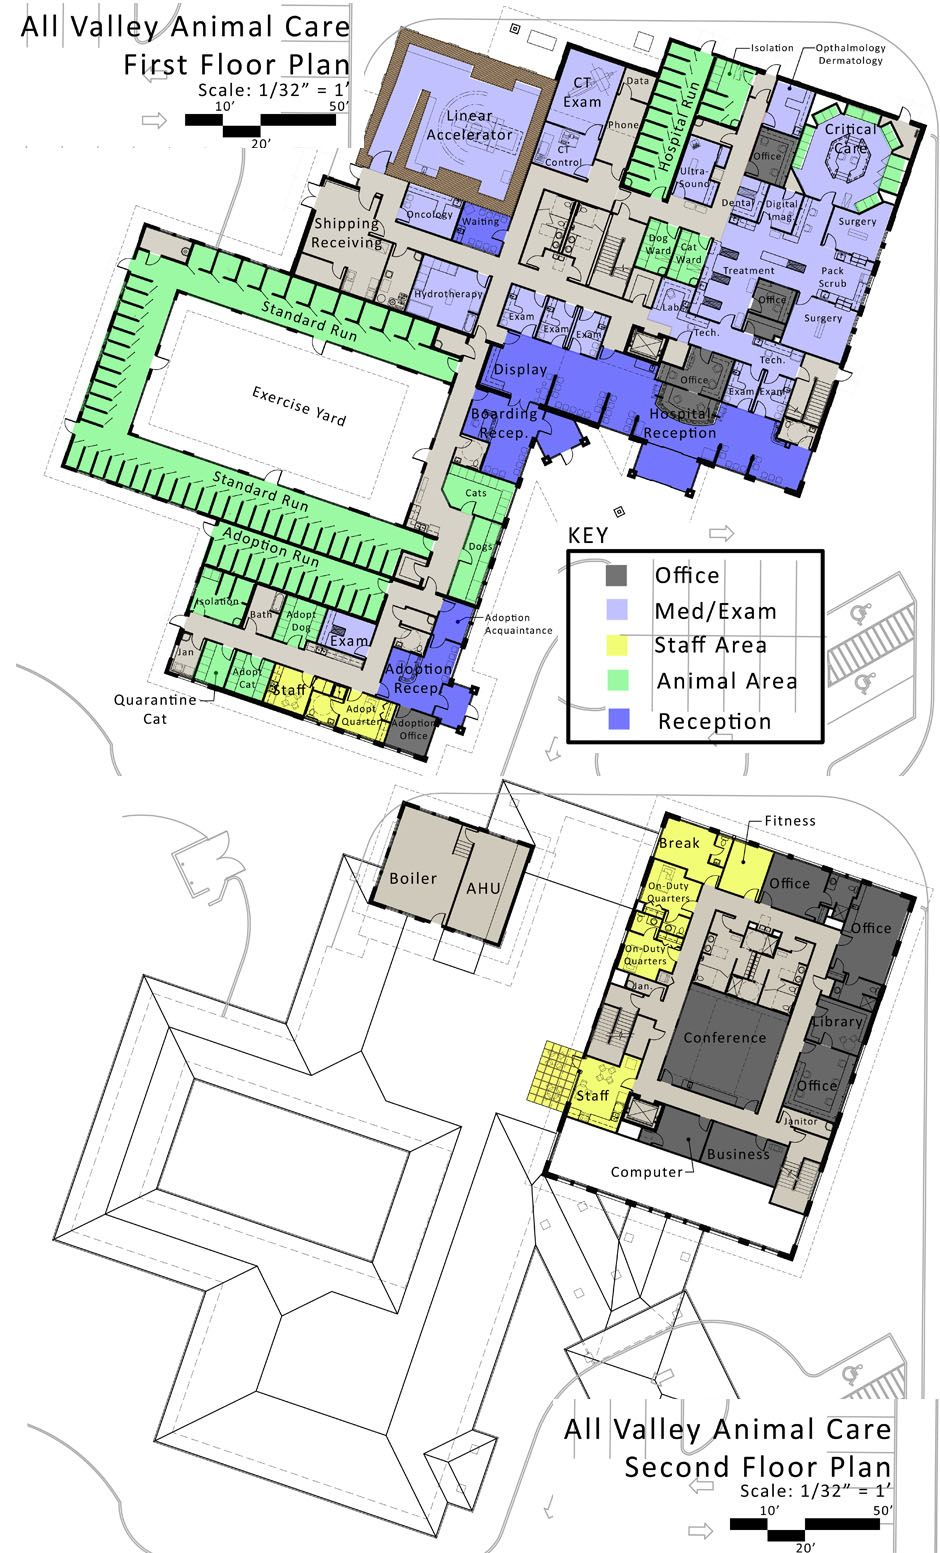 Care Design Veterinary Floor Plan All Valley Animal Care Center Animal Care